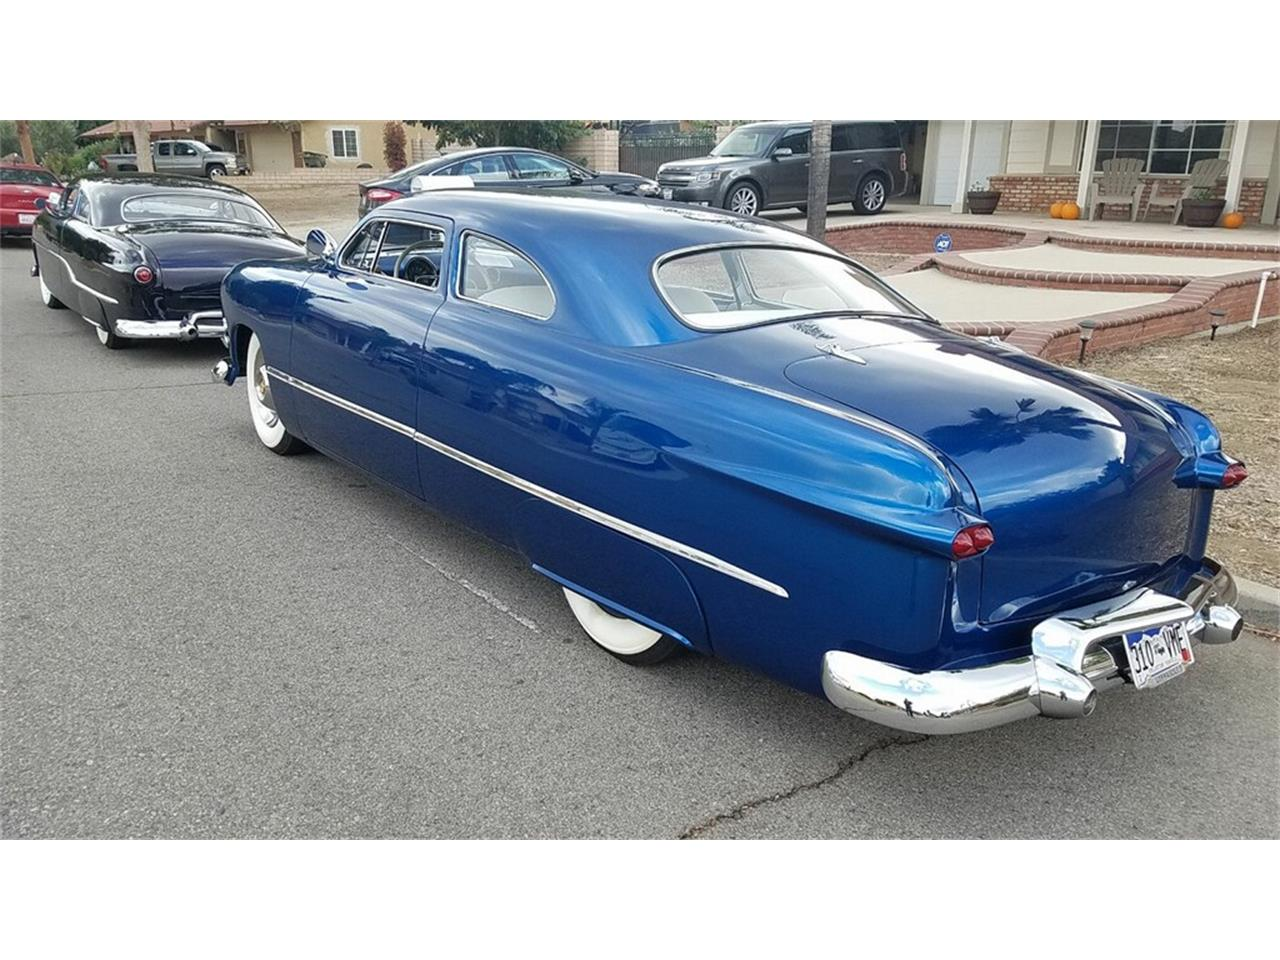 Large Picture of Classic 1950 Ford Tudor located in California Offered by a Private Seller - PZ3K